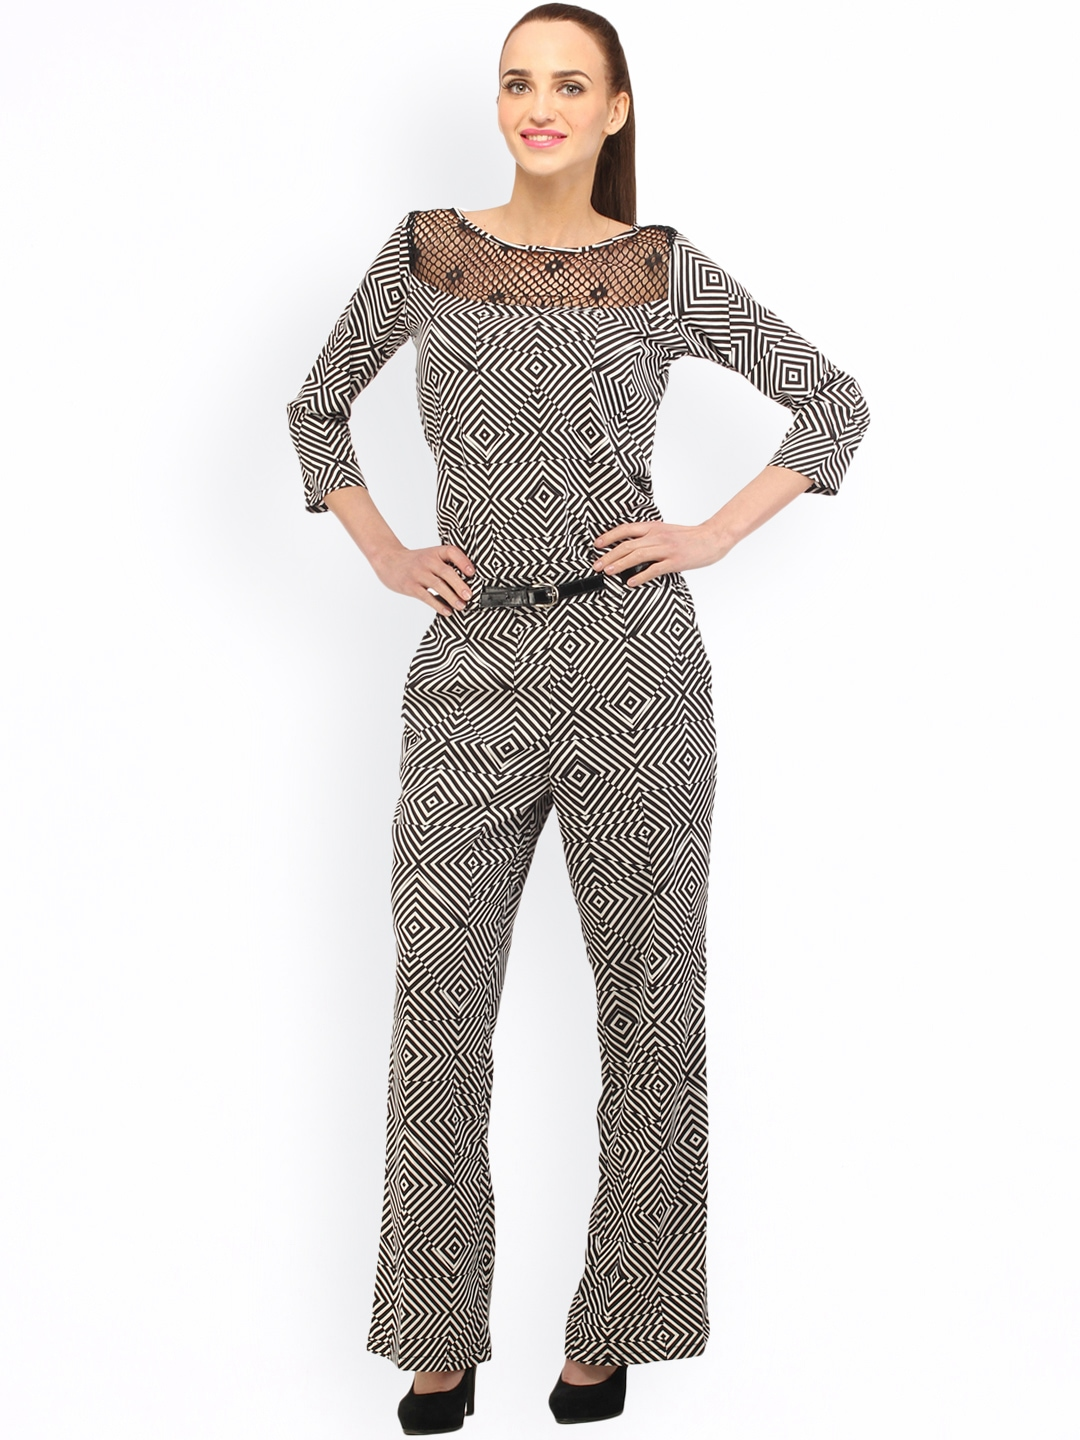 Simple Cottinfab Brown Viscose Printed Jumpsuits Available At SnapDeal For Rs